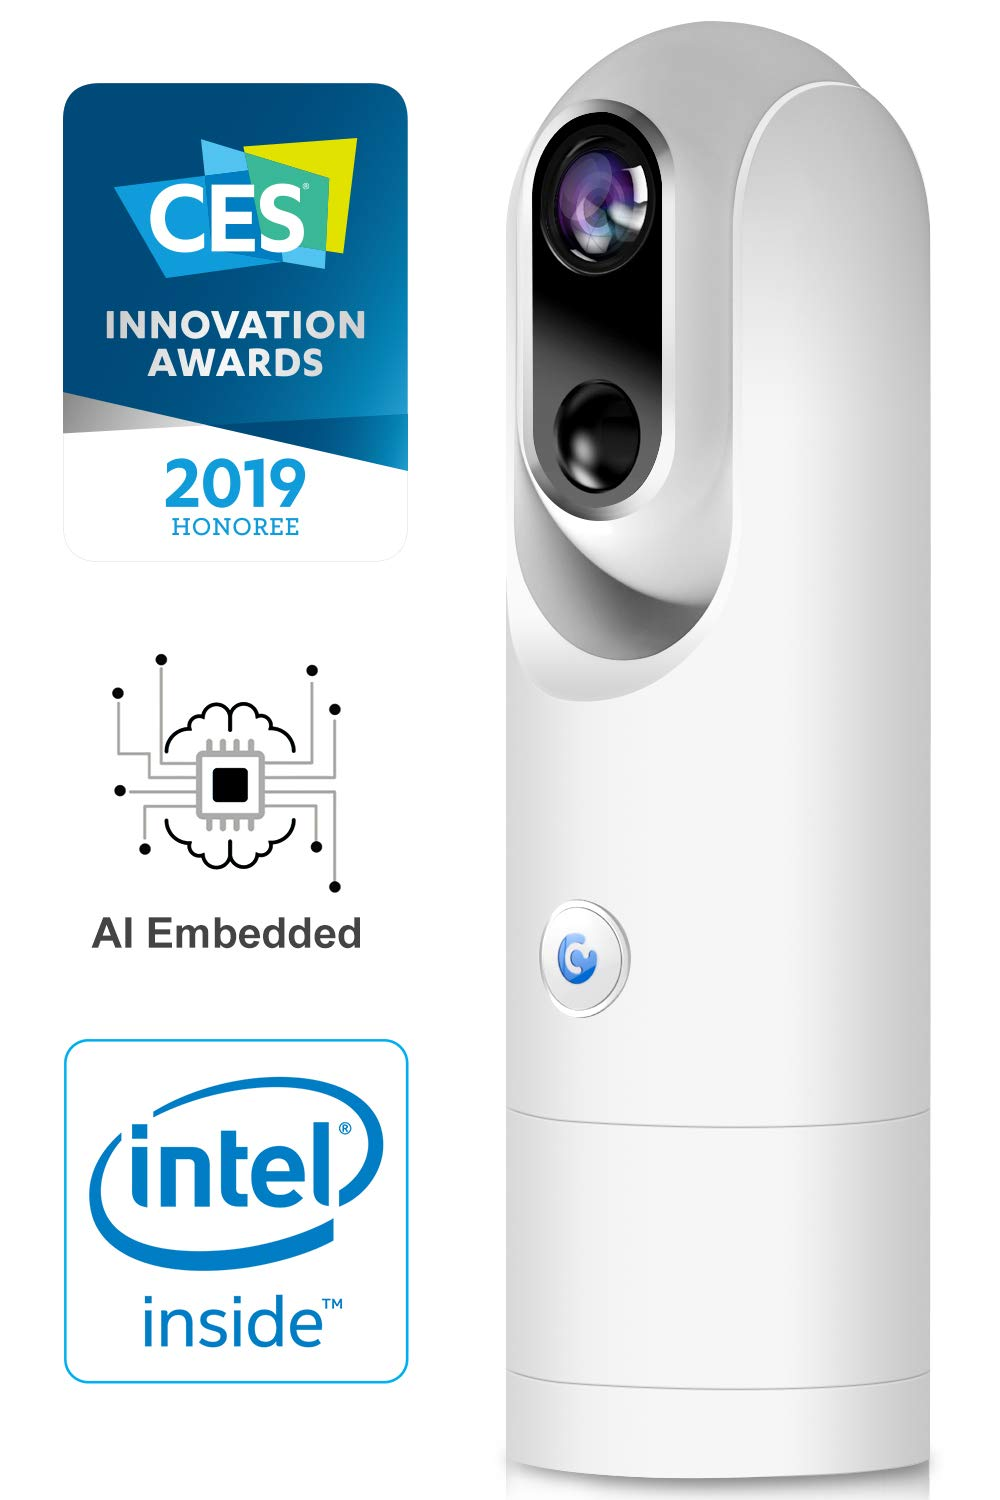 Wireless Home Security AI Camera - 1080P FHD Wi-Fi Battery-Powered Surveillance Camera System, Person Detection, Face Recognition, Low False Alarm, Night Vision, 2-Way Audio, Free 8GB Storage - White by Sticker-Eye